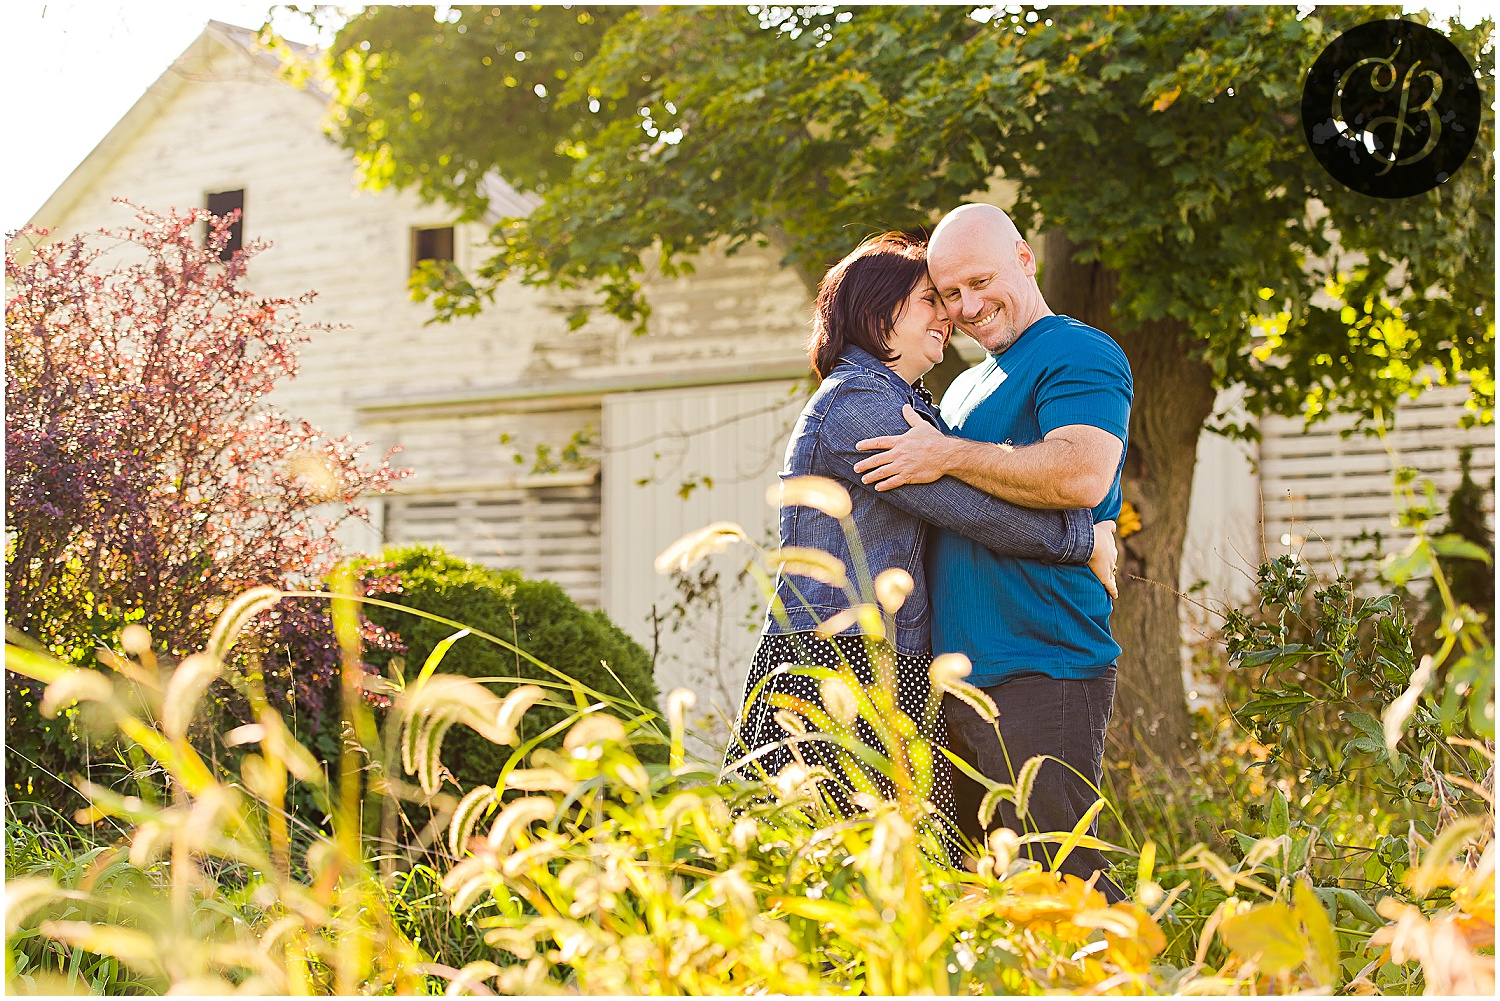 Fall-Orchard-Engagement-Photography_0059.jpg